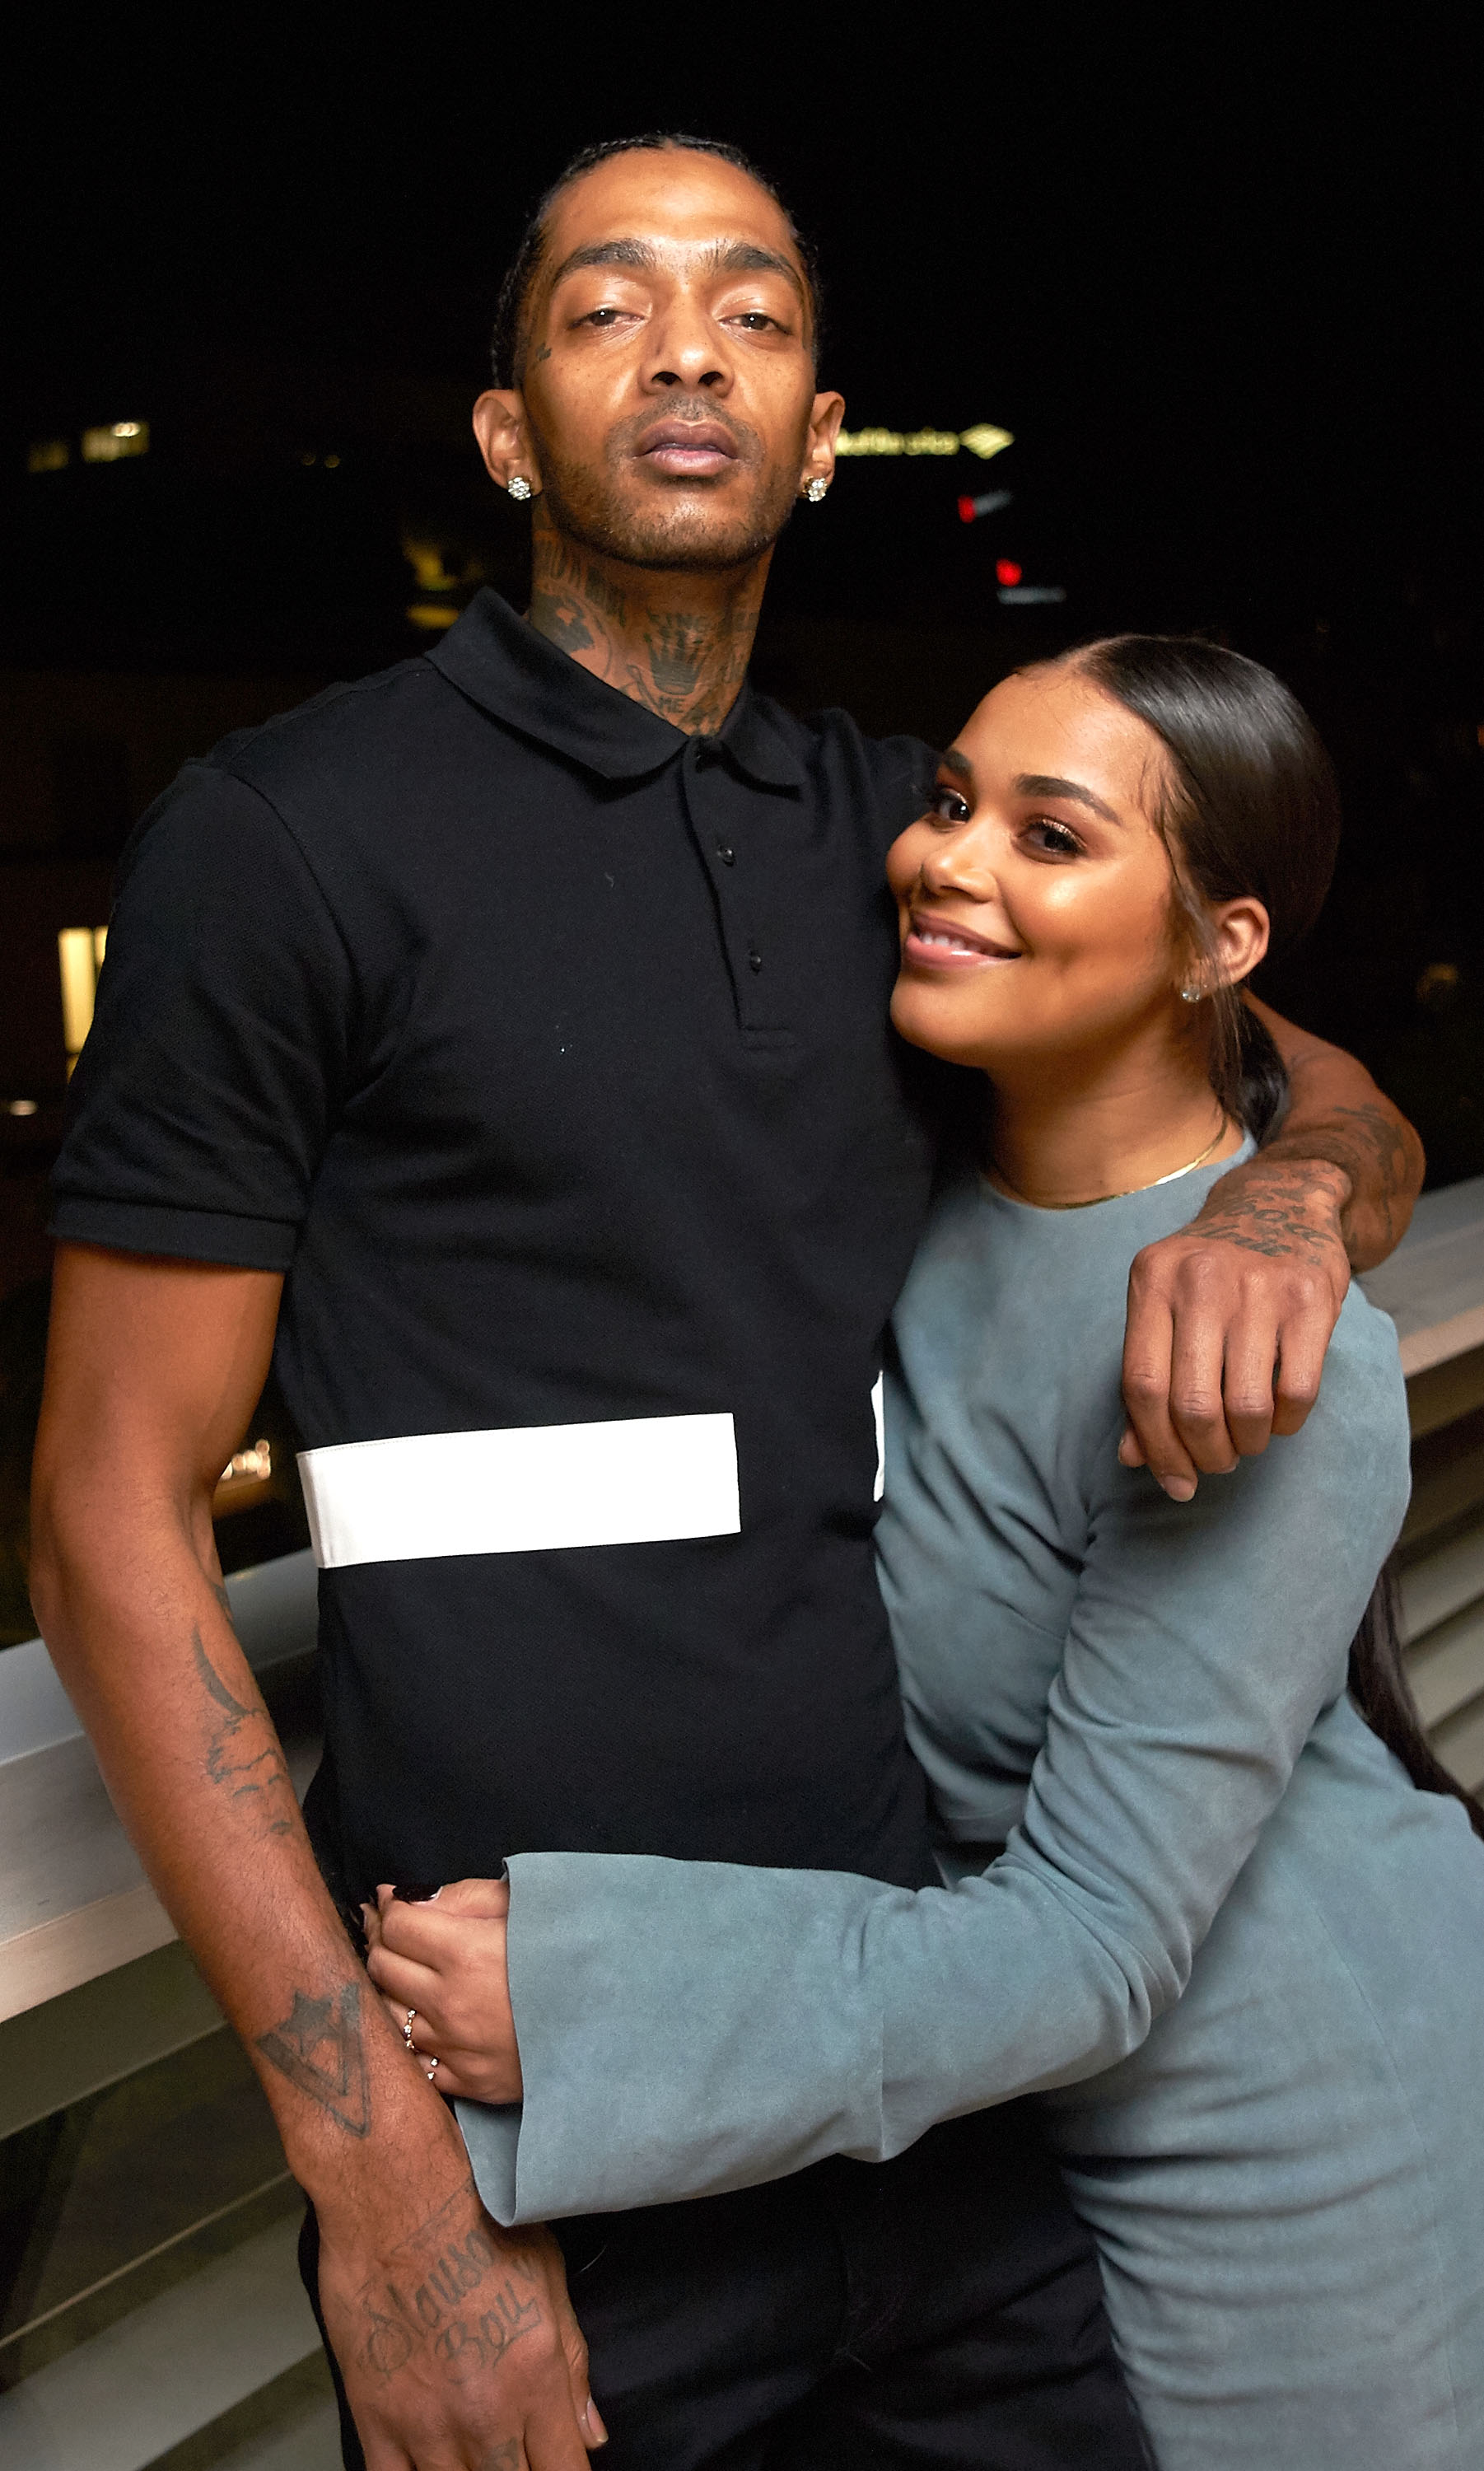 Nipsey Hussle & partner Lauren London at a party on Nov. 4, 2016 in California | Photo: Getty Images